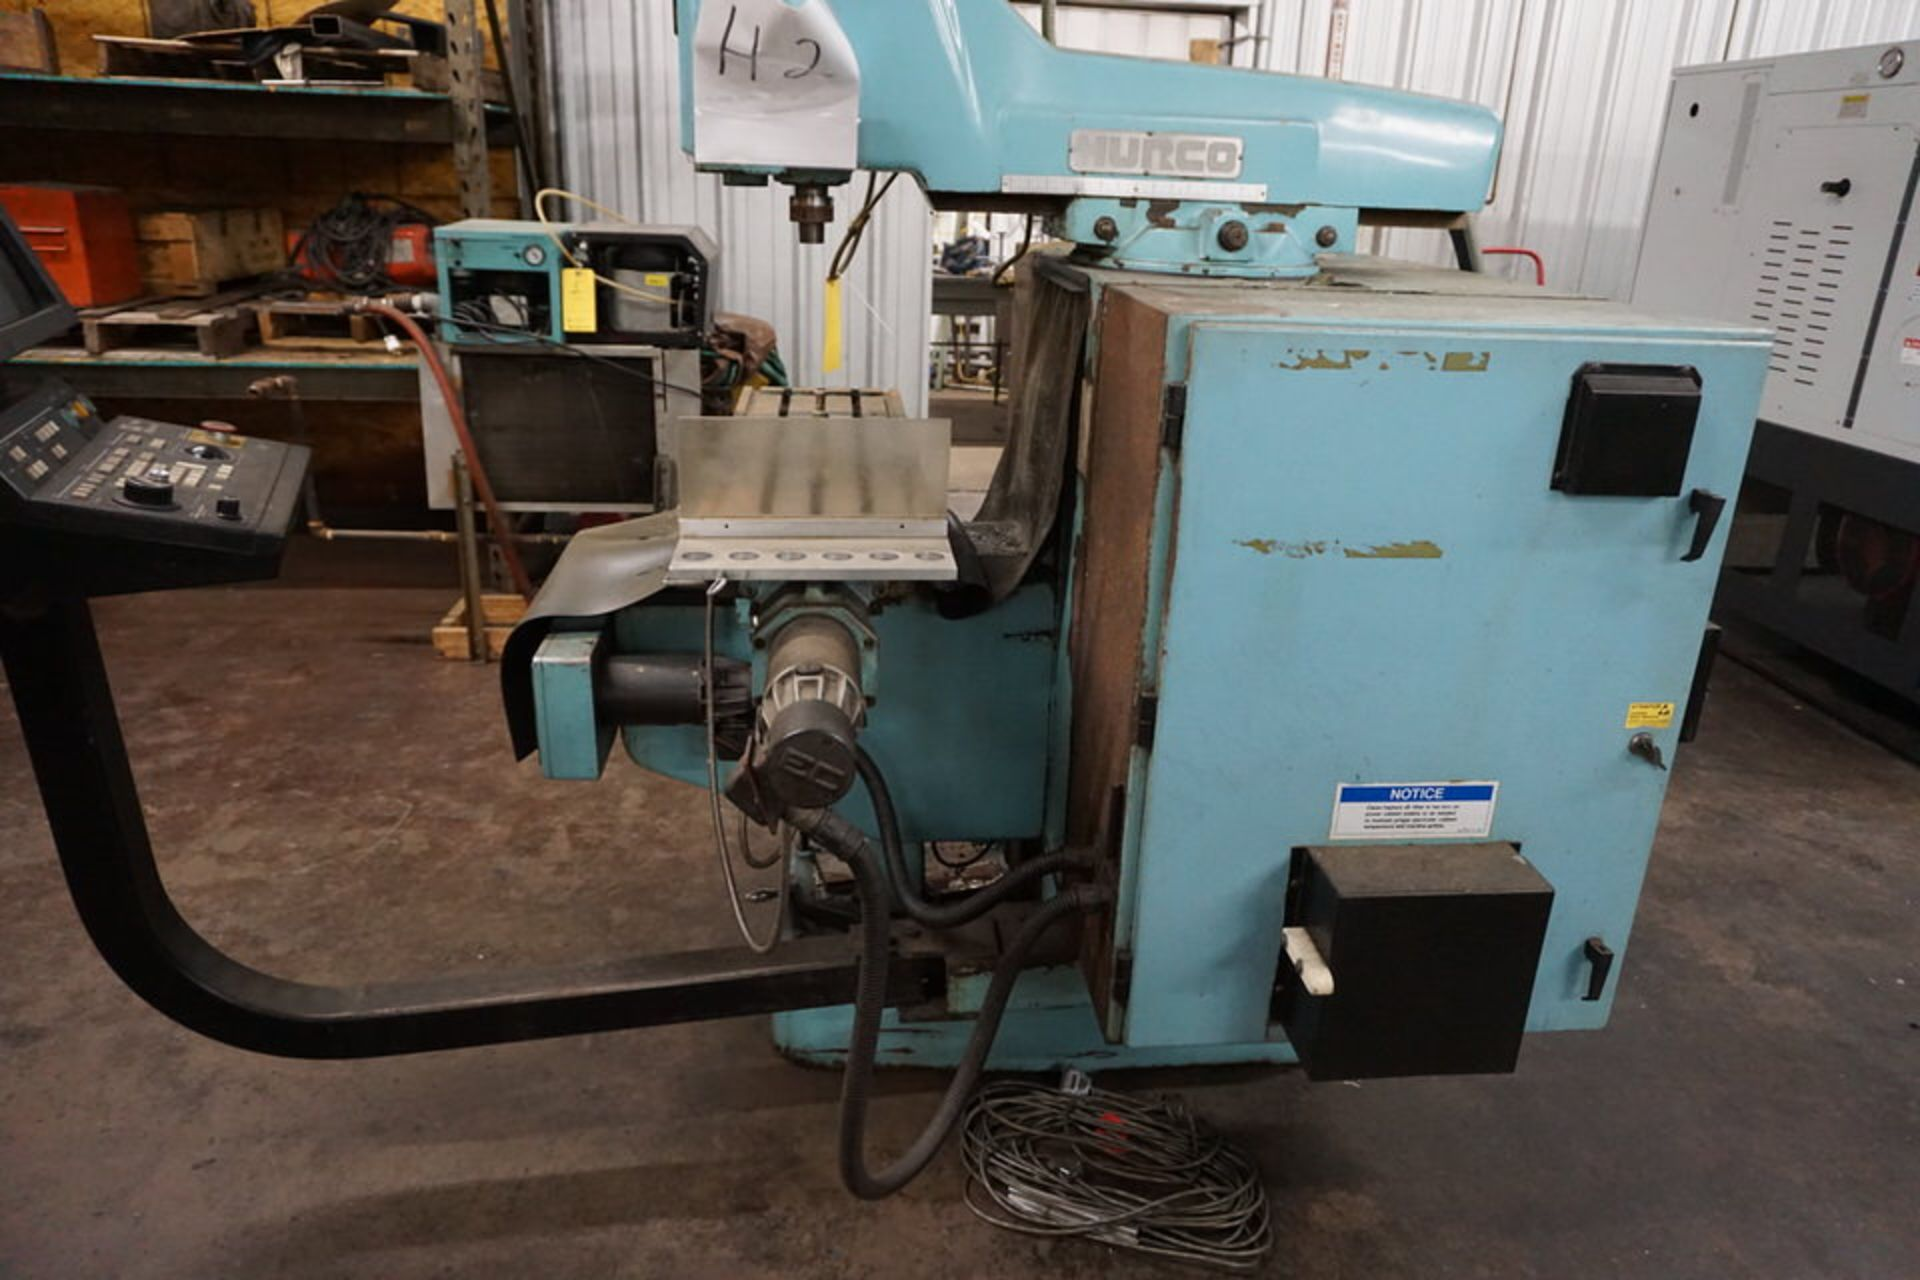 HURCO VERTICAL MILLING MACHINE W/ HURCO ULTIMAX KM-3 CONTROL - Image 4 of 6